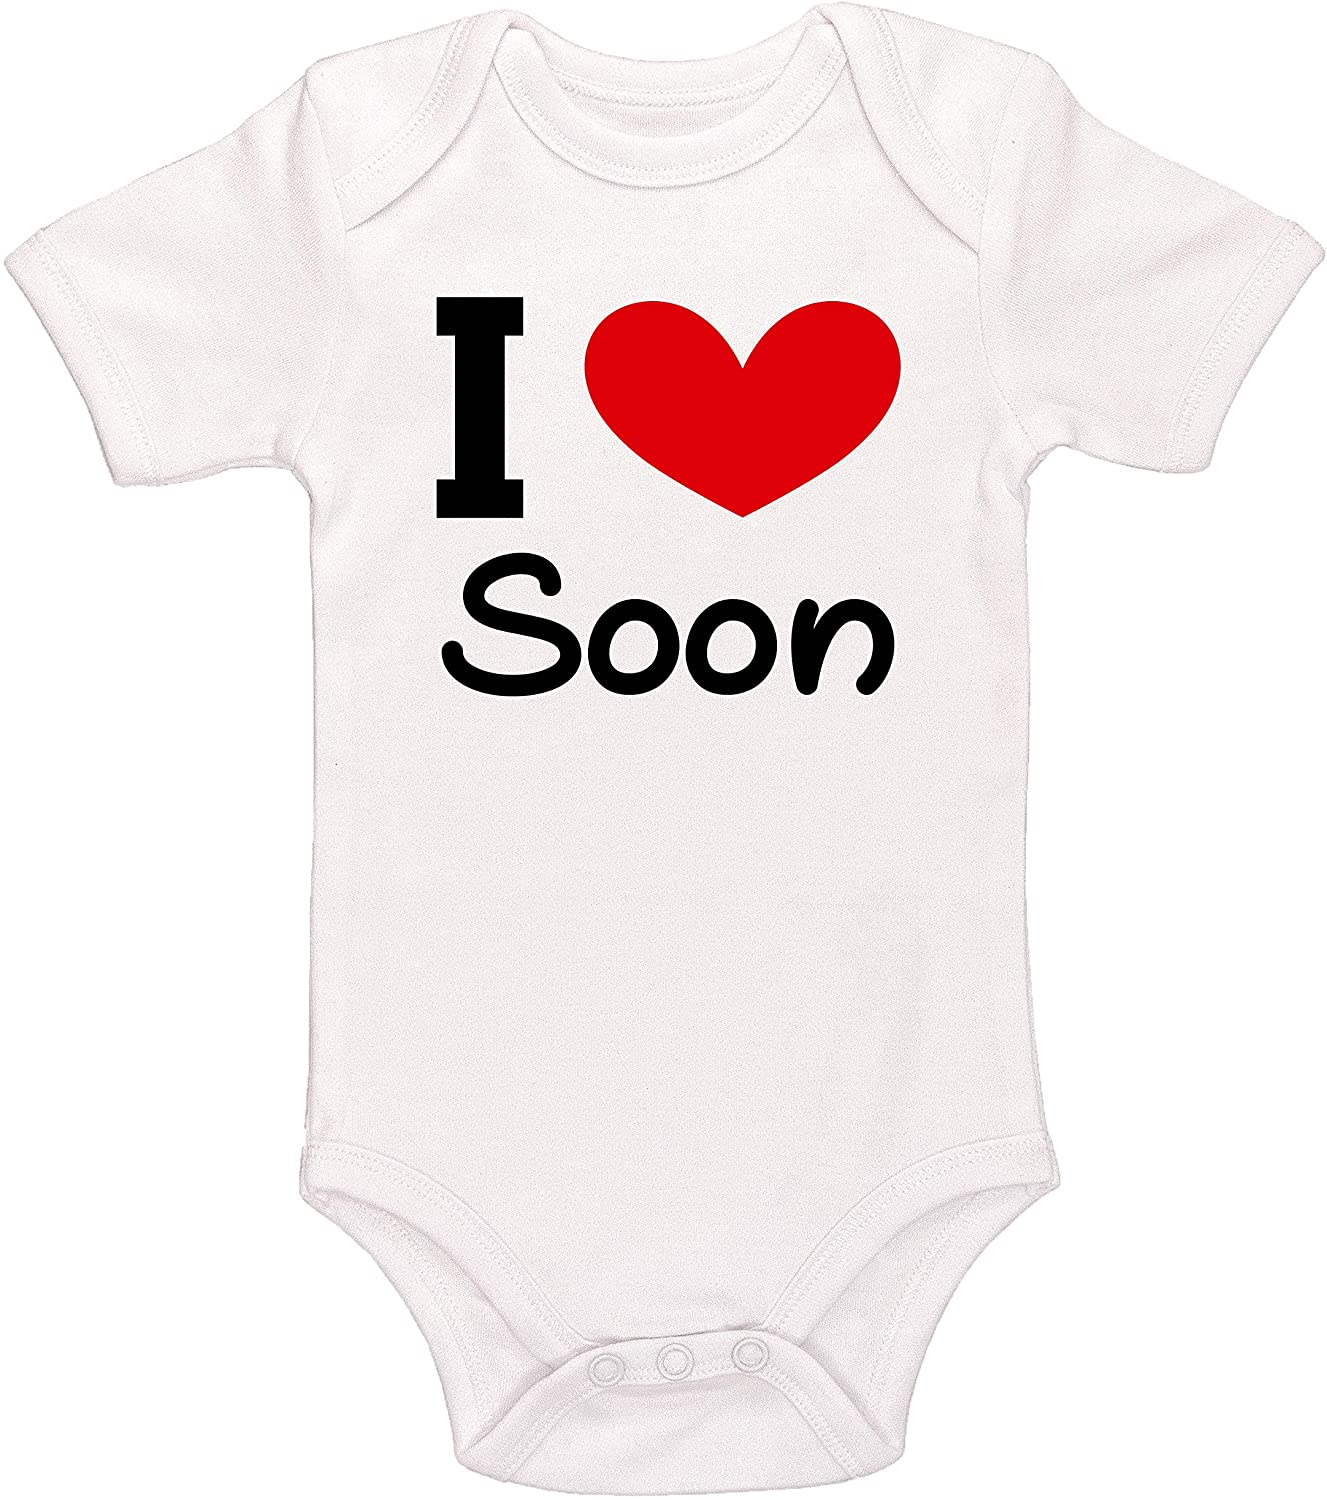 Kinacle I Love Soon Personalized Baby Bodysuit